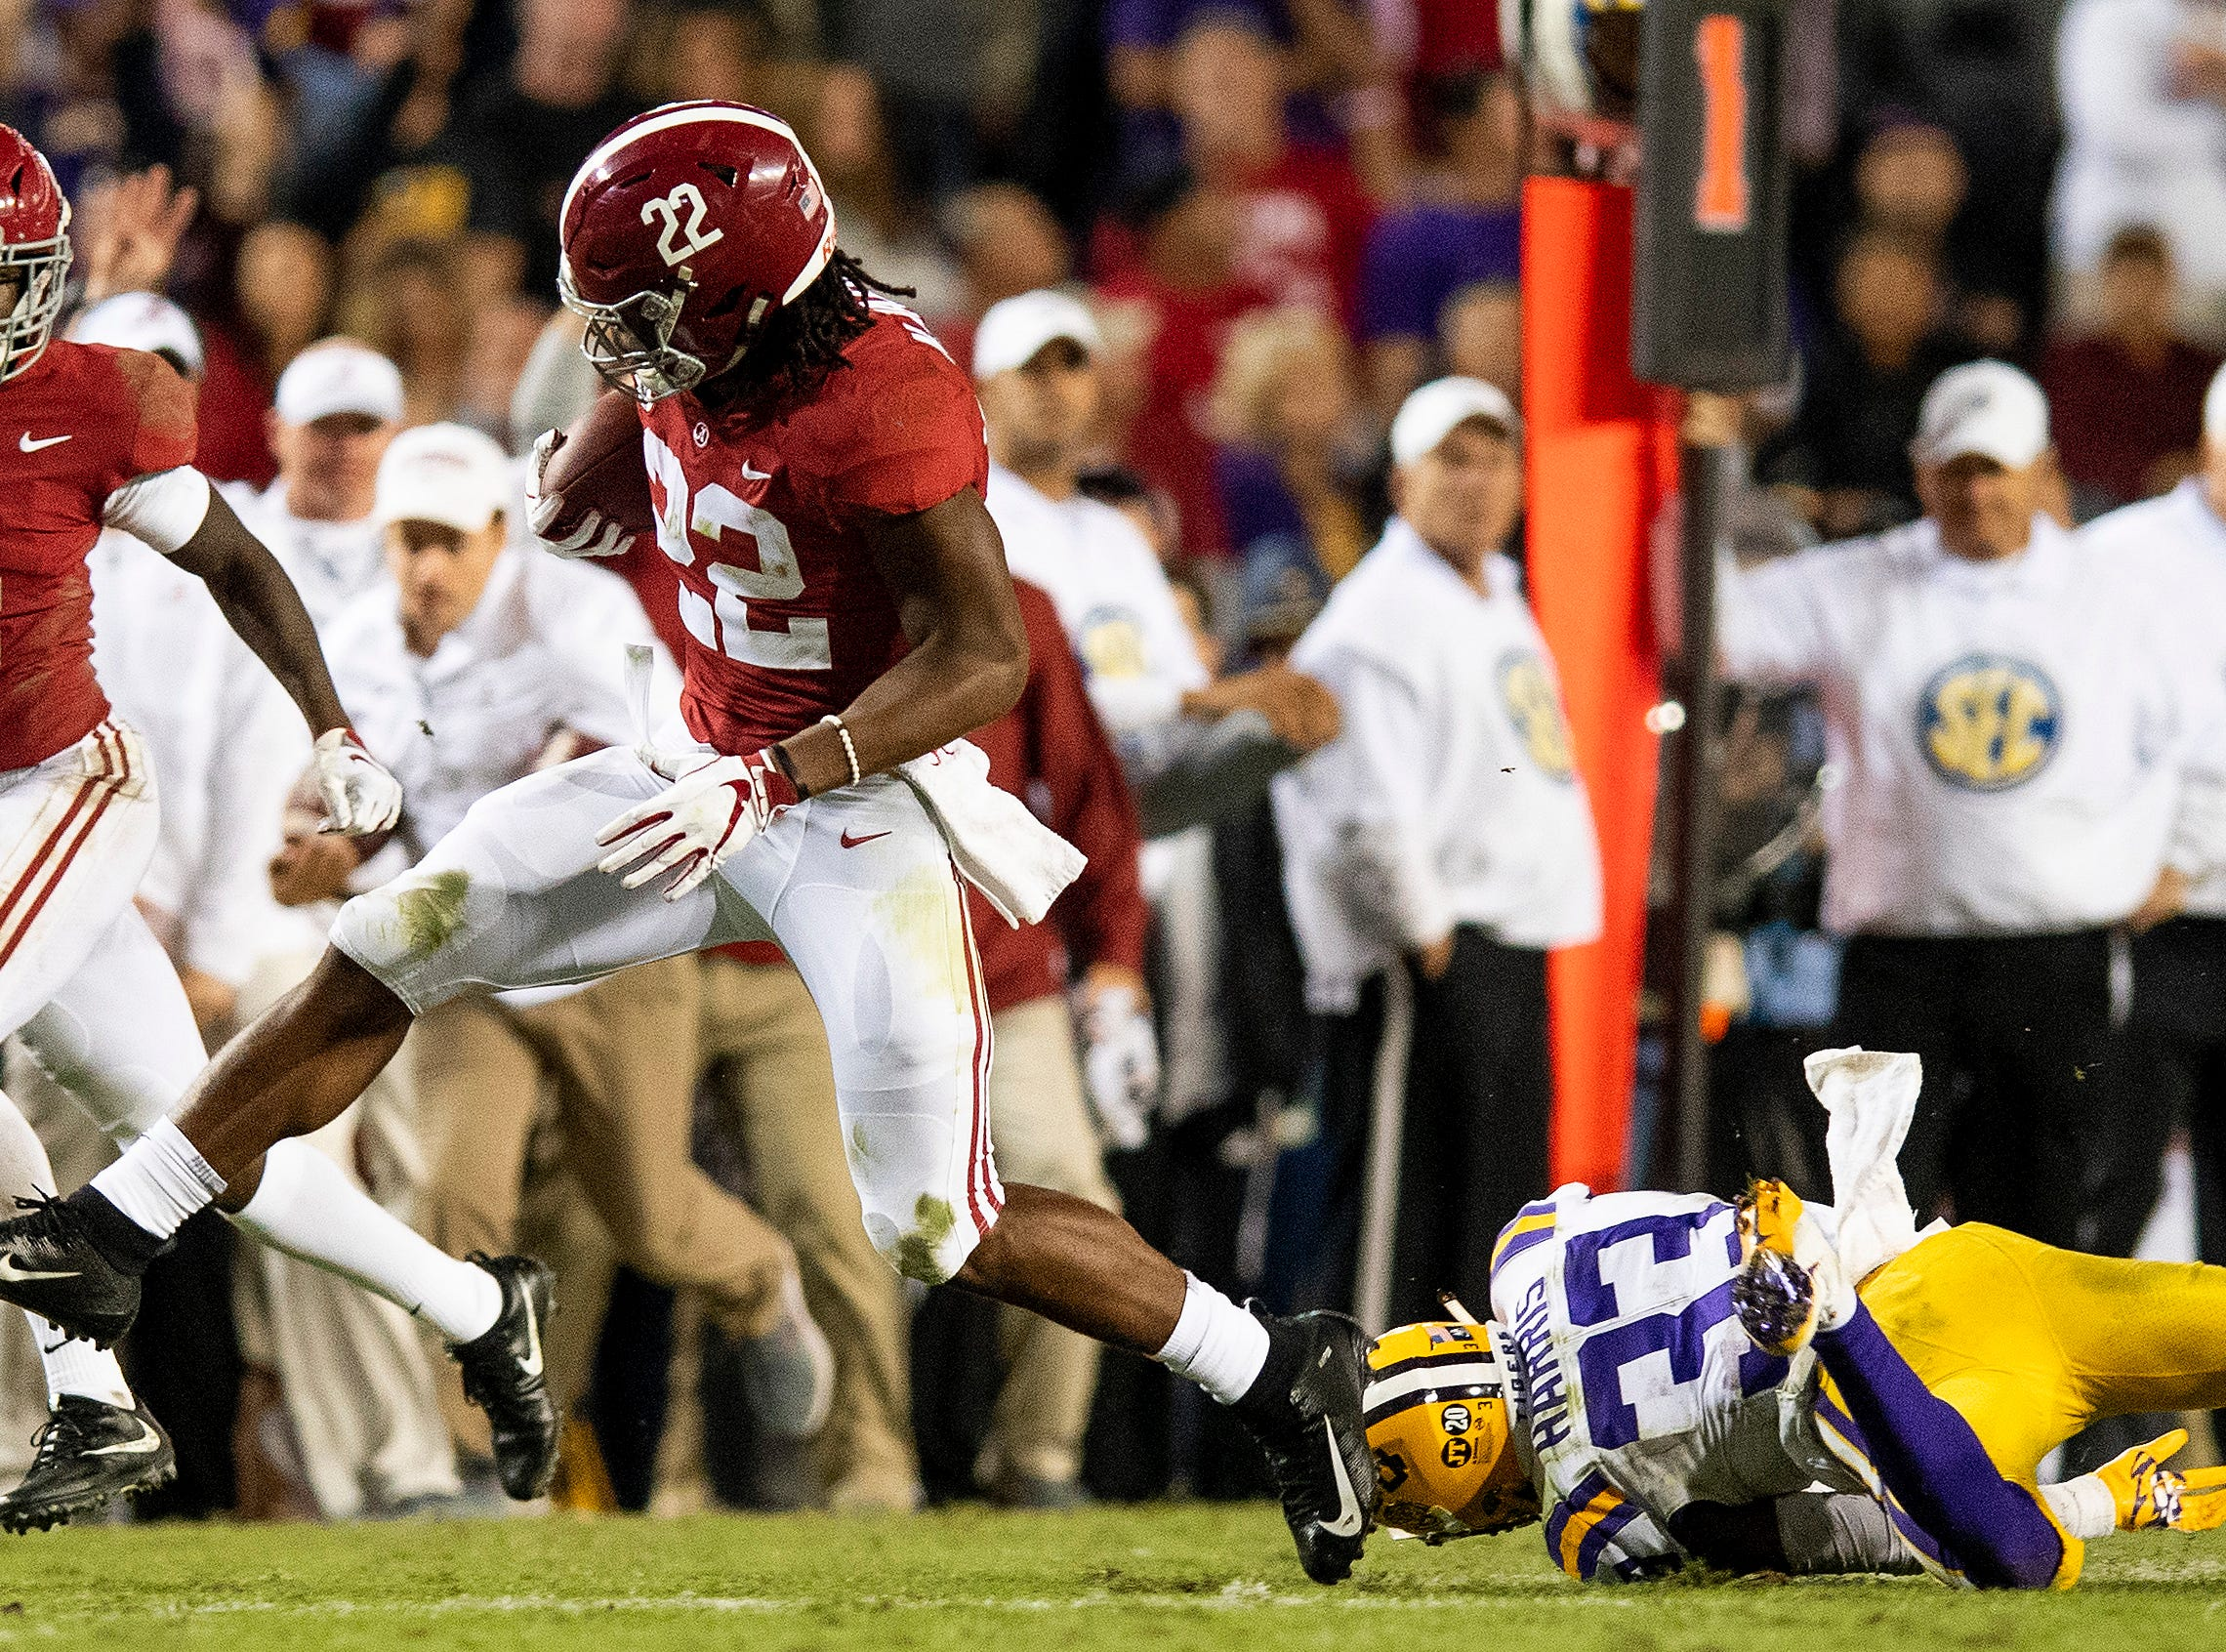 Alabama running back Najee Harris (22) gets by Louisiana State University safety Todd Harris, Jr., (33) in second half action at Tiger Stadium in Baton Rouge, La., on Saturday November 3, 2018.